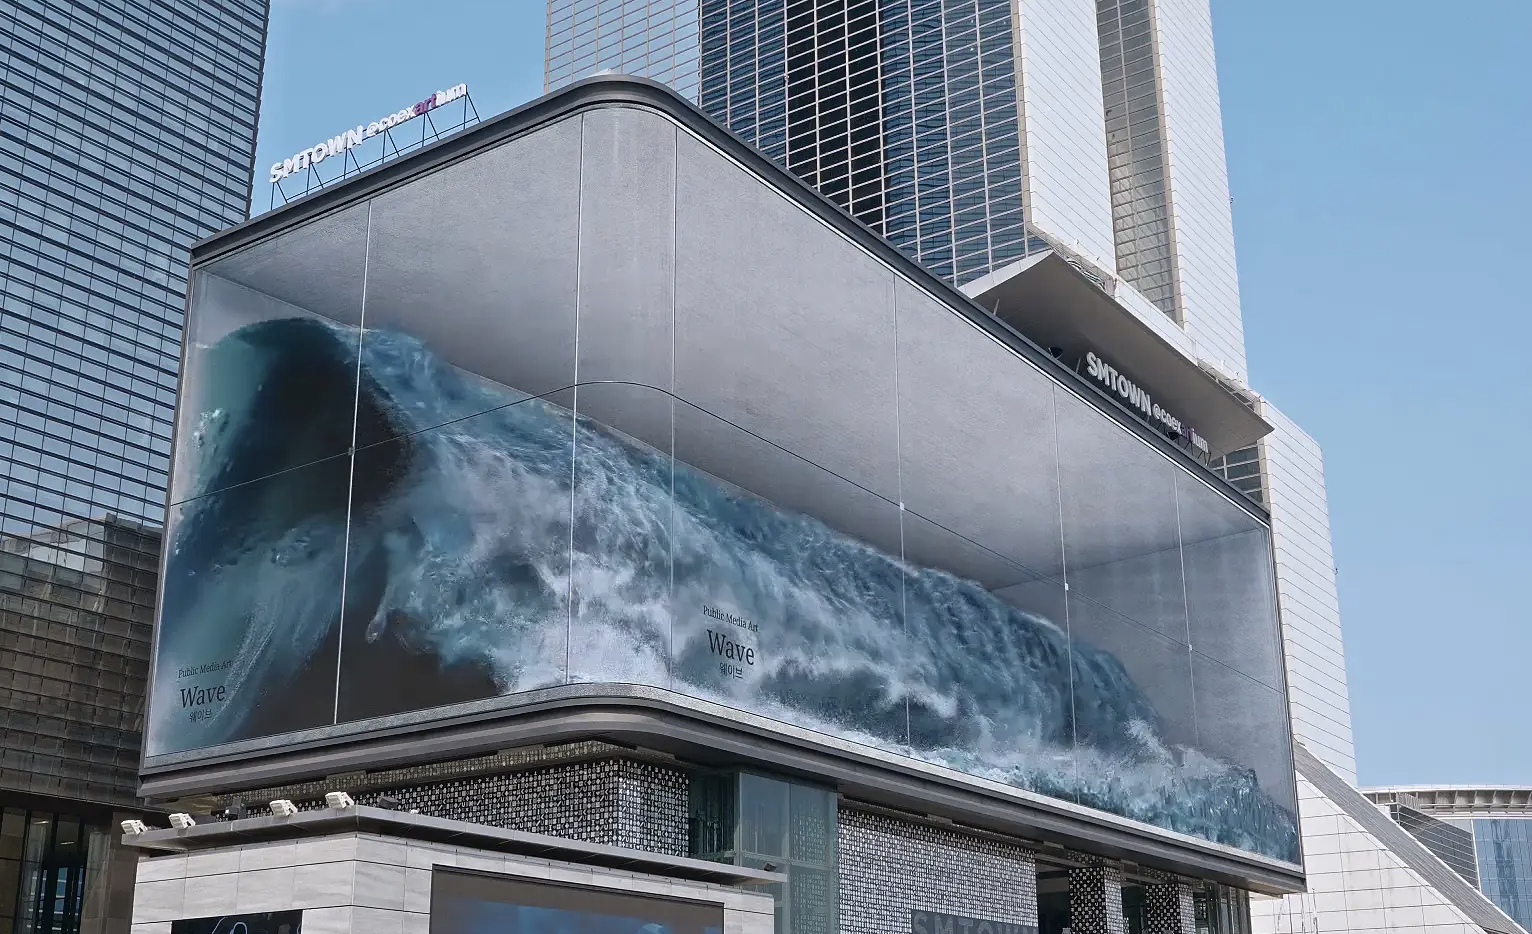 This Huge Crashing Wave in a Seoul Aquarium Is Actually a Gigantic Optical Illusion